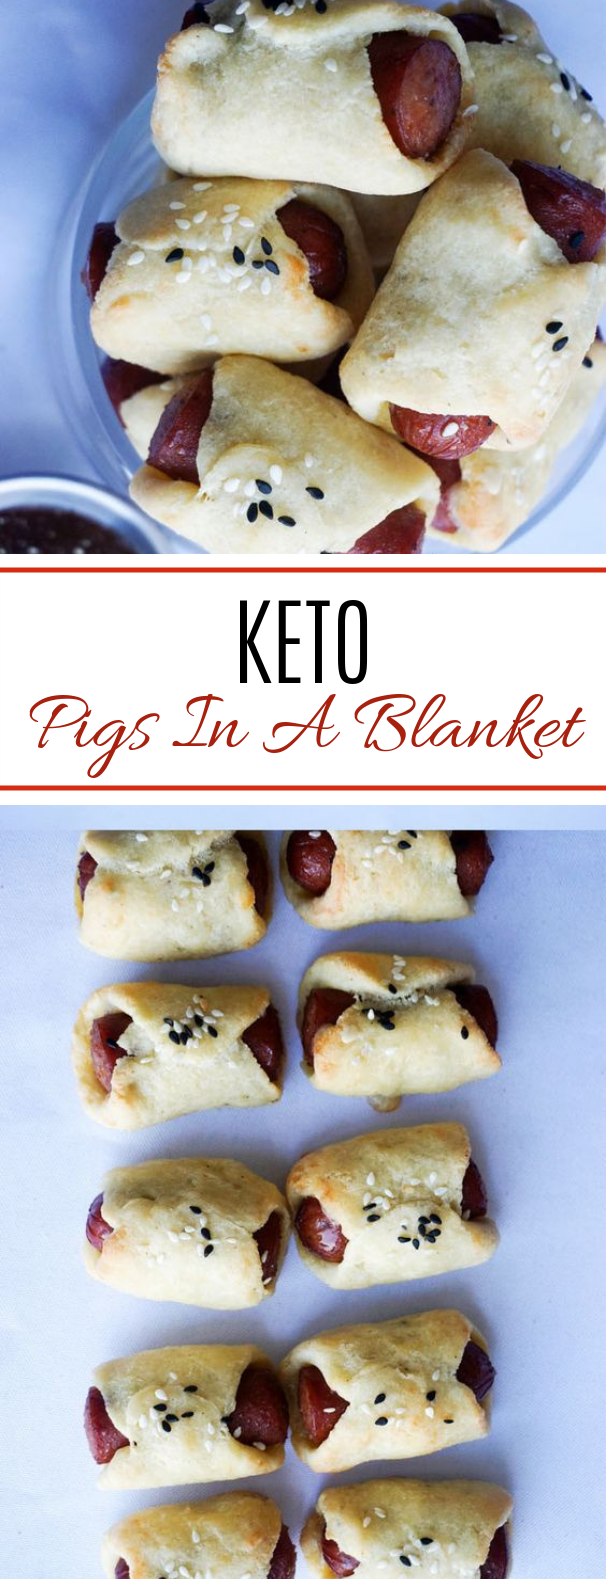 Keto Pigs In A Blanket #snacks #keto